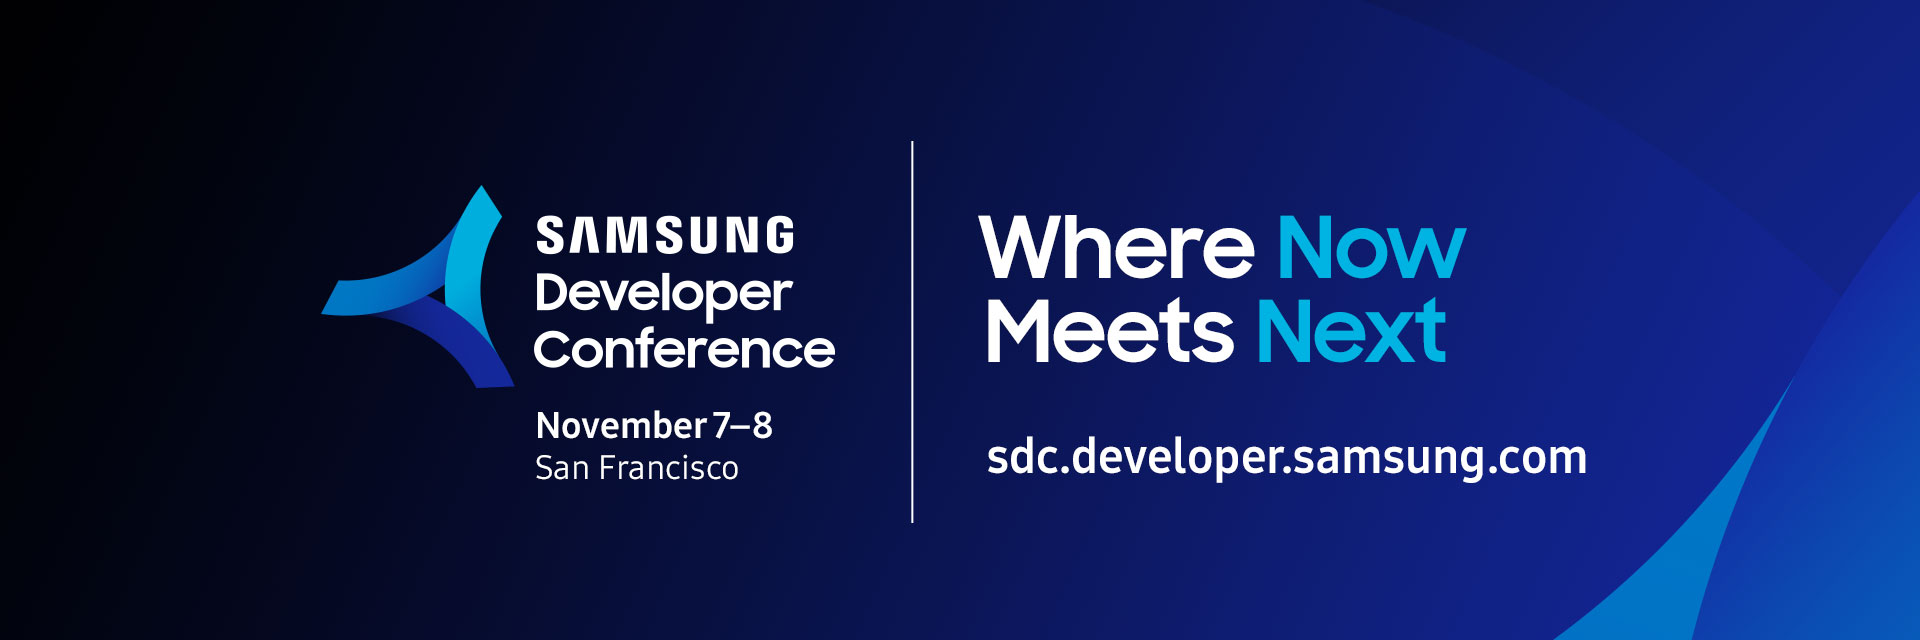 #SDC18 Registration is OPEN! Get your Early Bird Discount Today